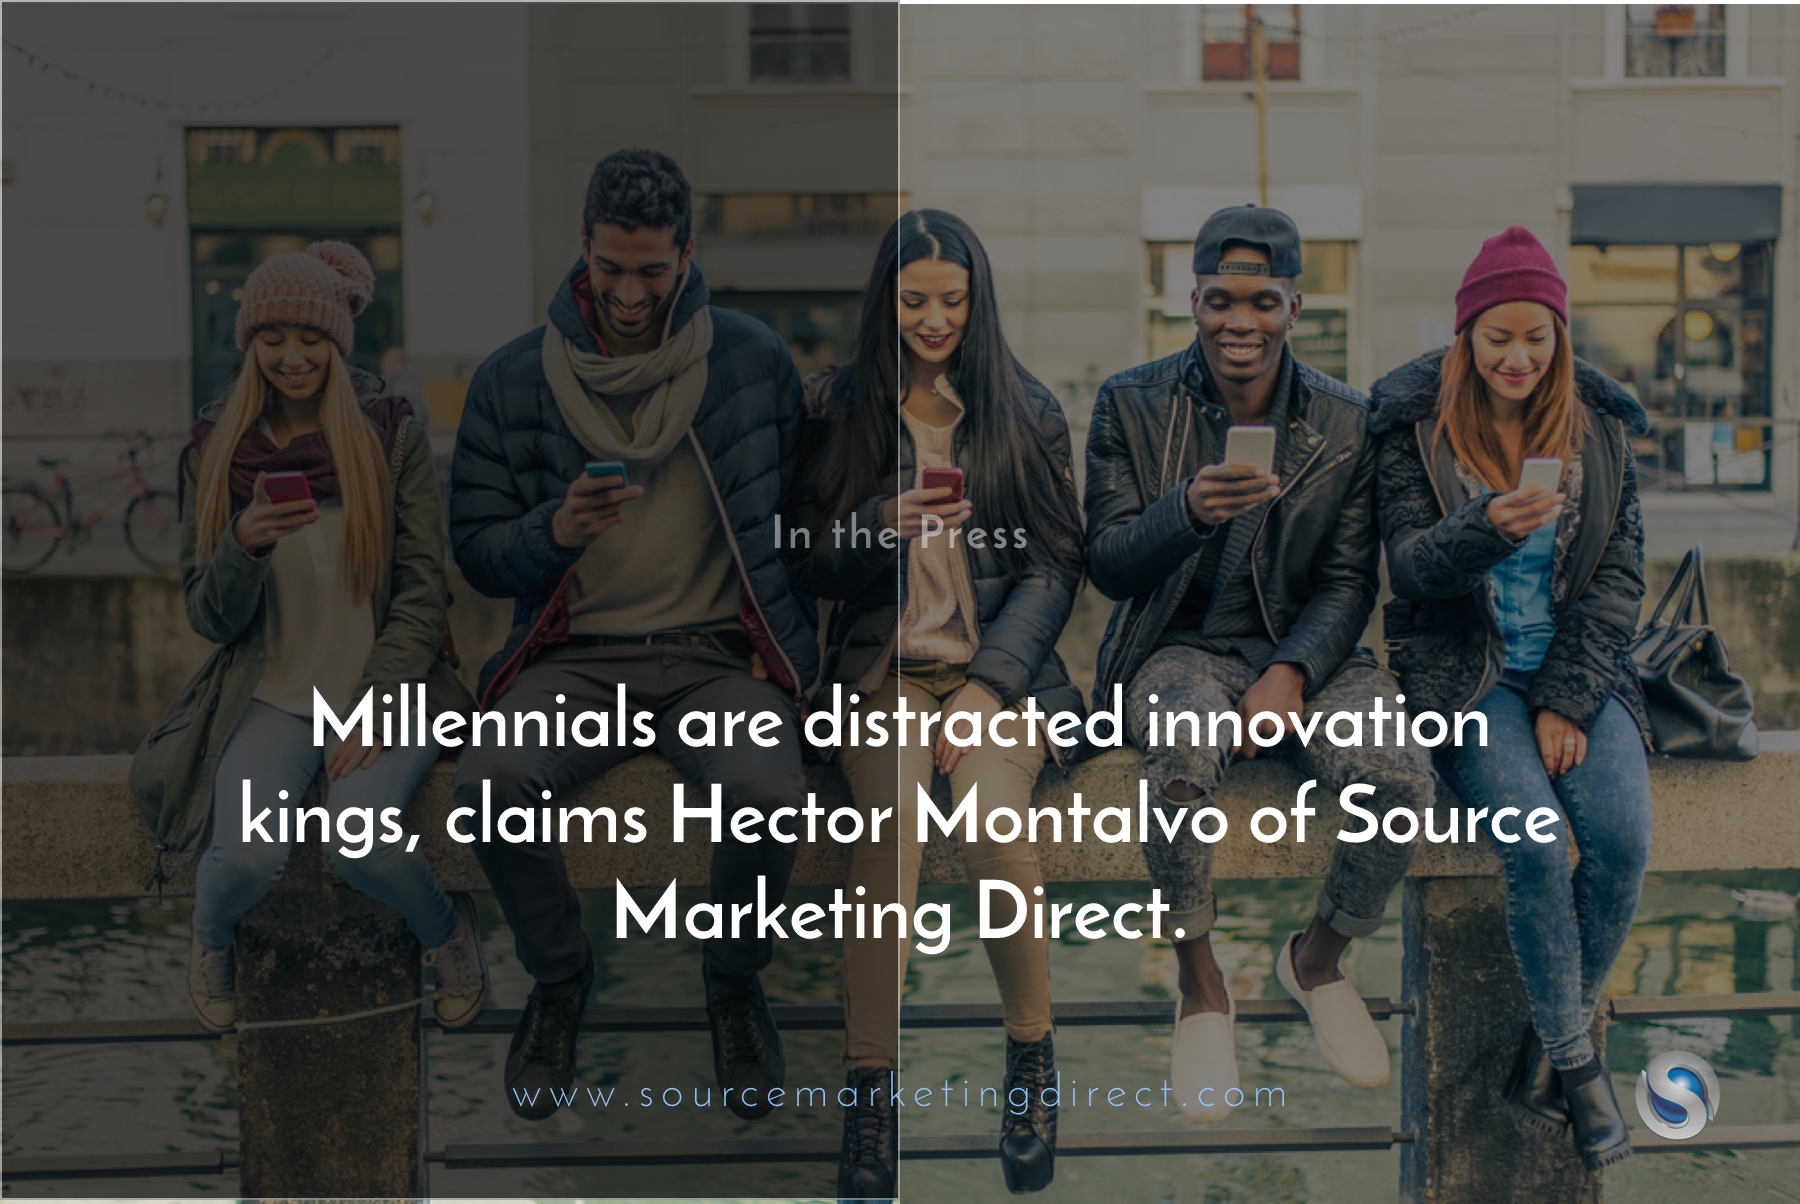 Millennials are distracted innovation kings, claims Hector Montalvo of Source Marketing Direct.